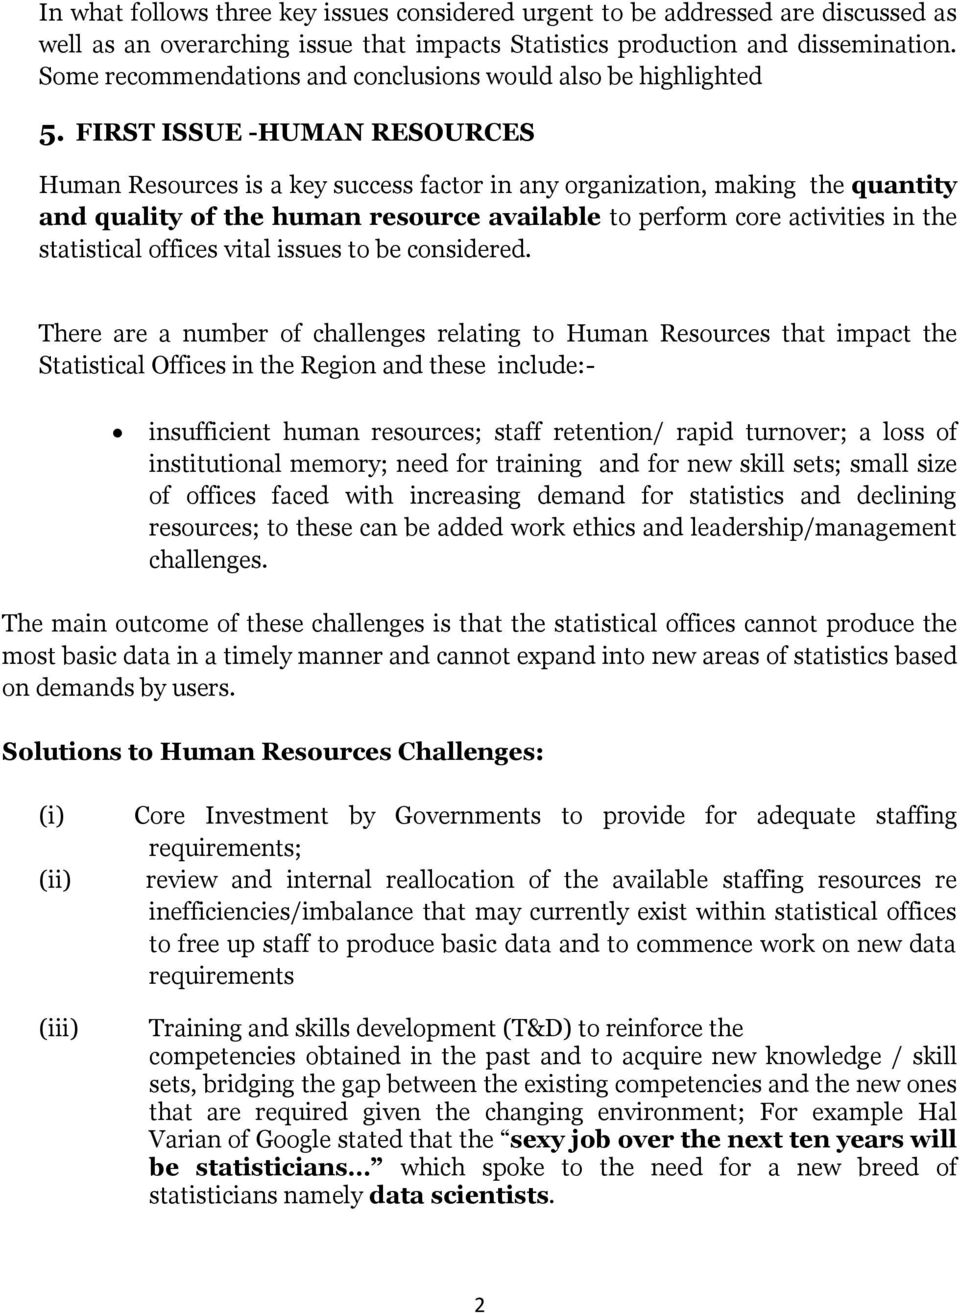 FIRST ISSUE -HUMAN RESOURCES Human Resources is a key success factor in any organization, making the quantity and quality of the human resource available to perform core activities in the statistical